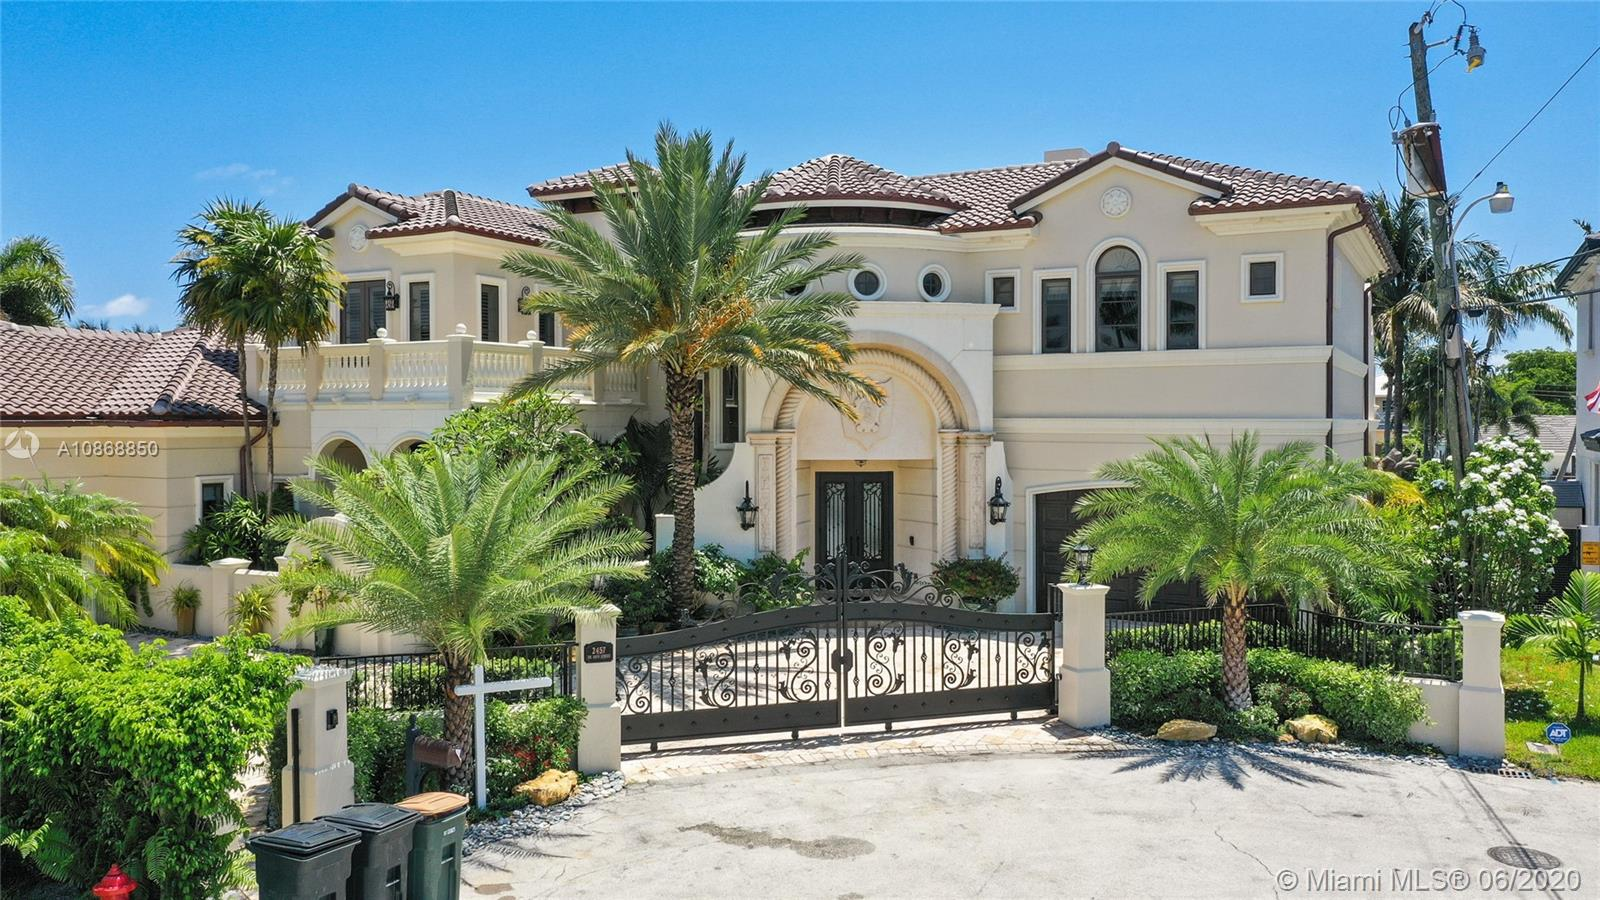 Timeless Mediterranean gated Lighthouse point estate w/270' of water frontage. The dock will take up to a 135' yacht with plenty of electrical power to run all the boats. The dock also includes 2 large hurricanes lifts to keep your 40ft plus toys out of the water and another lift for your 3 jet skis! Chef's kitchen w/Wolf appliances, gas range, SubZero refrigerator & 2 dishwashers. Master suite w/balcony & water view.media room & office. Smart home technology, sound system & alarm security system cameras-direct police call alarm system security. Wired: zone sound & cameras. Air-conditioned garages, elevator. New heated saltwater pool & gas summer kitchen that will rival any tropical pool and Lush tropical landscaping. All-new A/C units. Property gates w/remote control access.One of a kind!